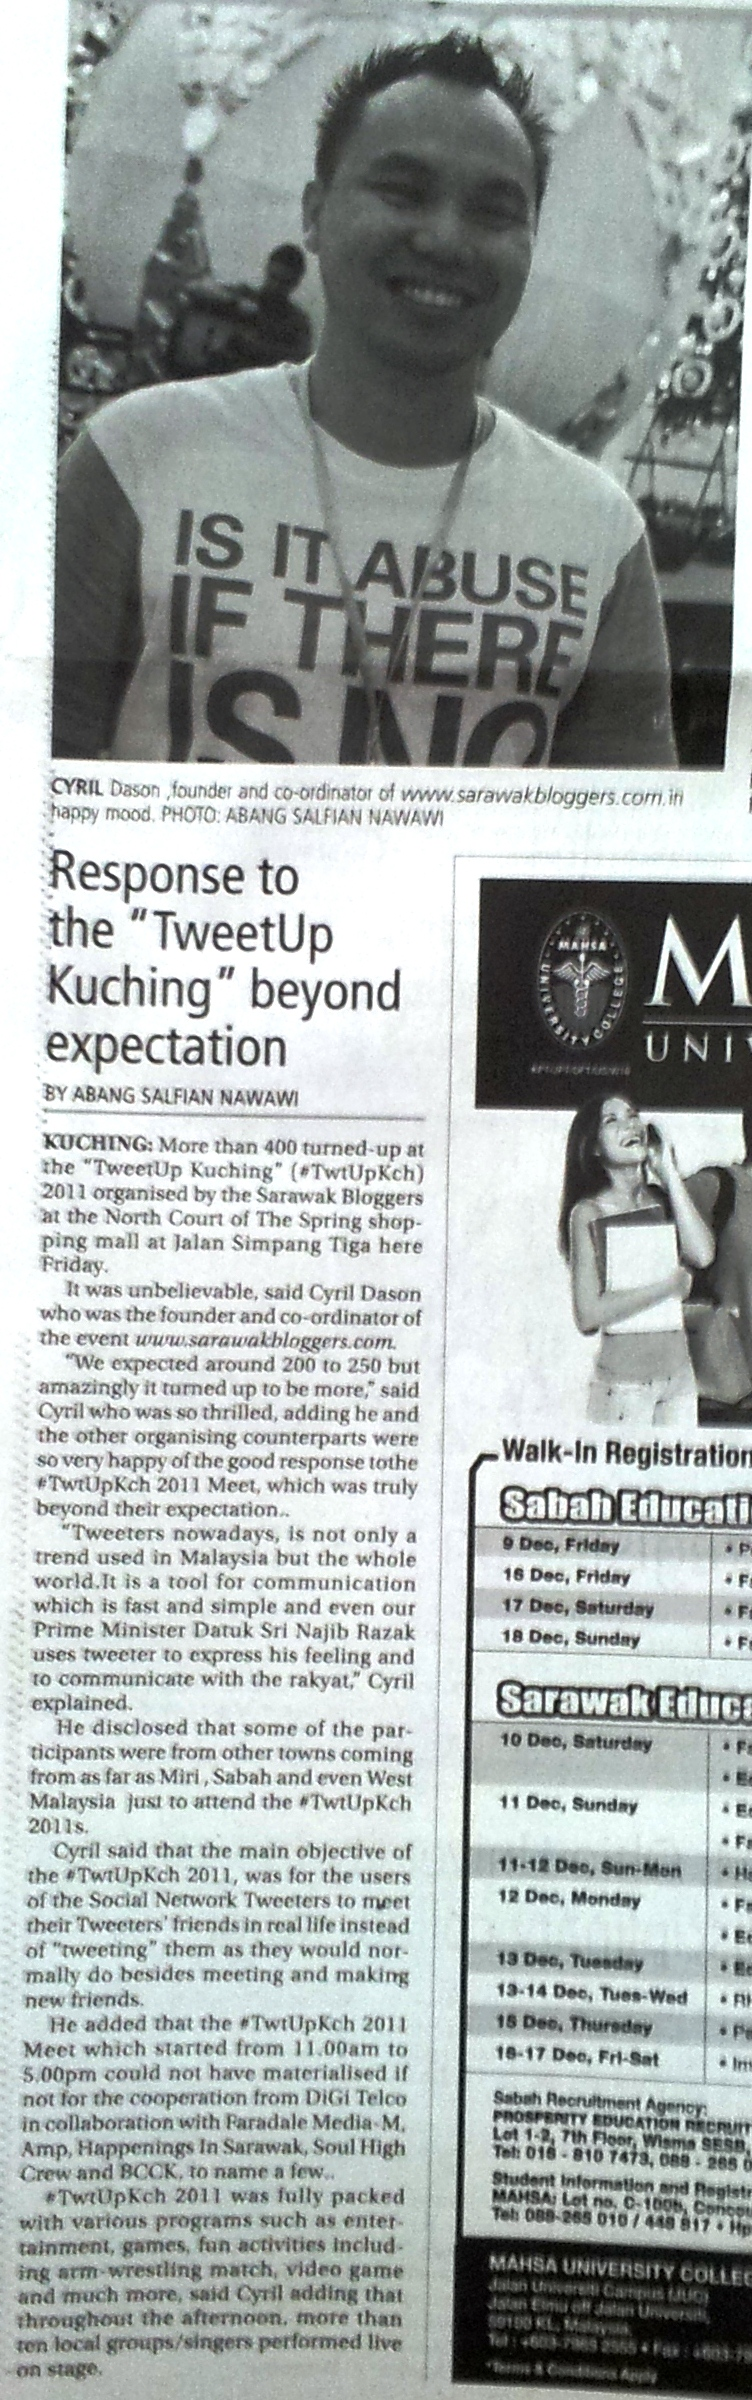 Response to TwtUpKch beyond expectations - New Sarawak Tribune